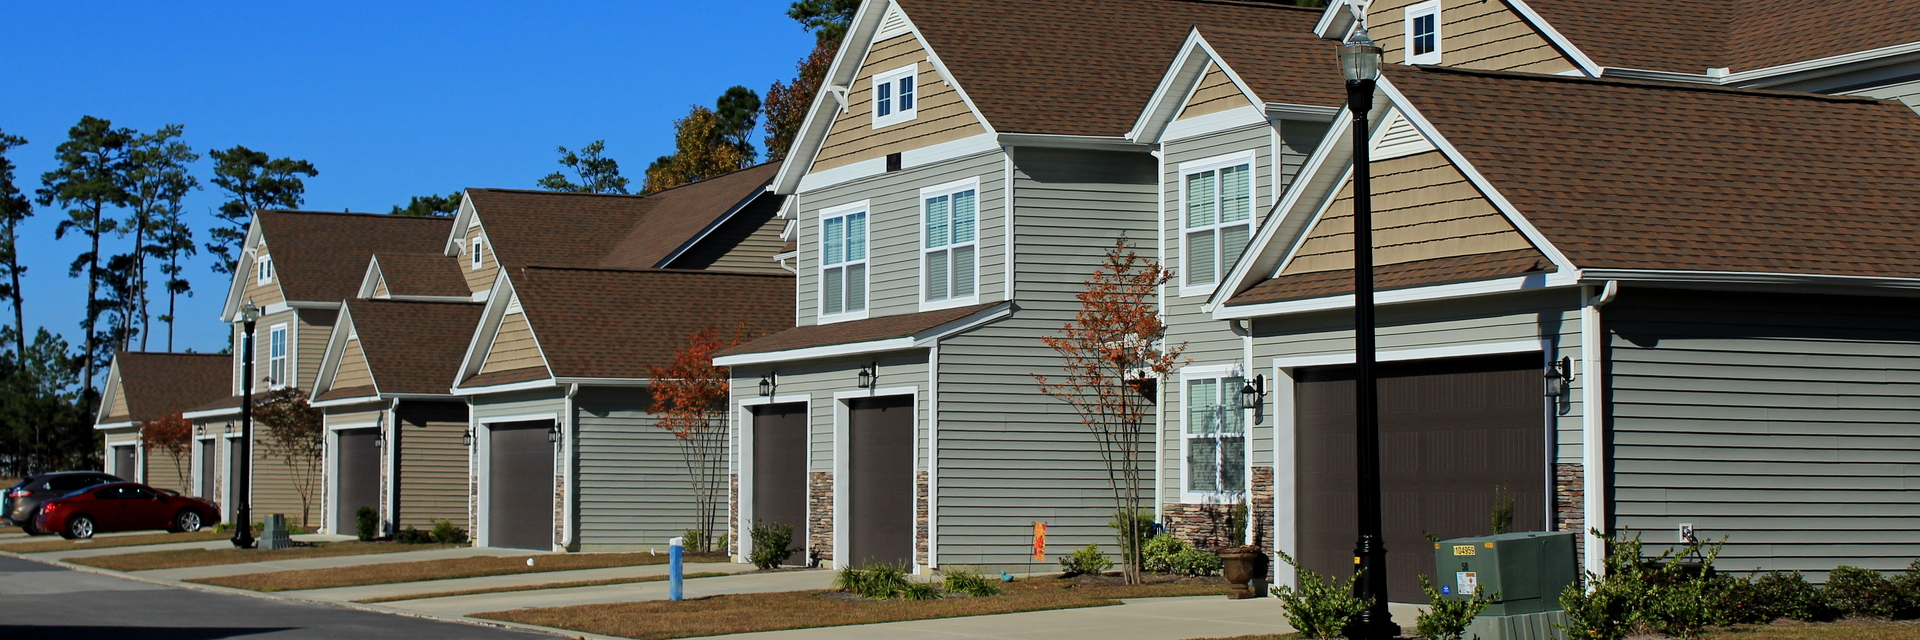 Townhouses with Garage For Sale in Berwick Near Surfside Beach SC